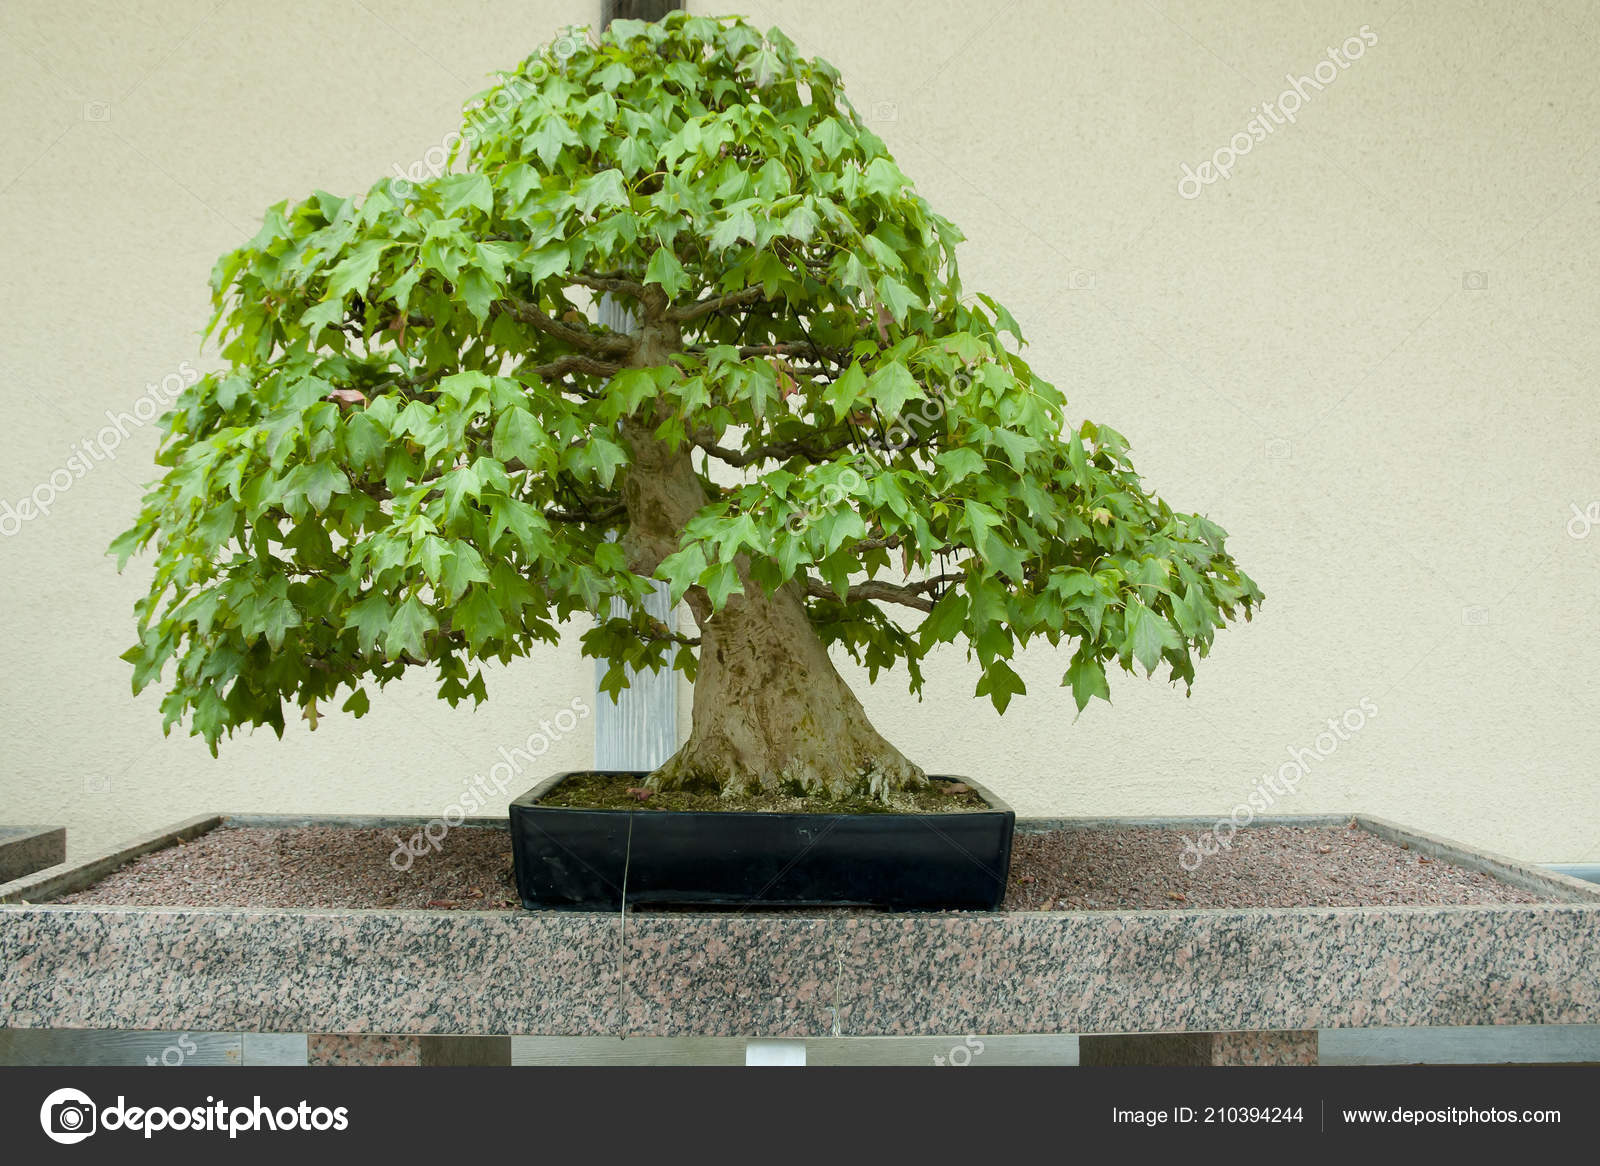 Trident Maple Bonsai Tree 100 Years Old Stock Photo C Adwo Hotmail Com 210394244